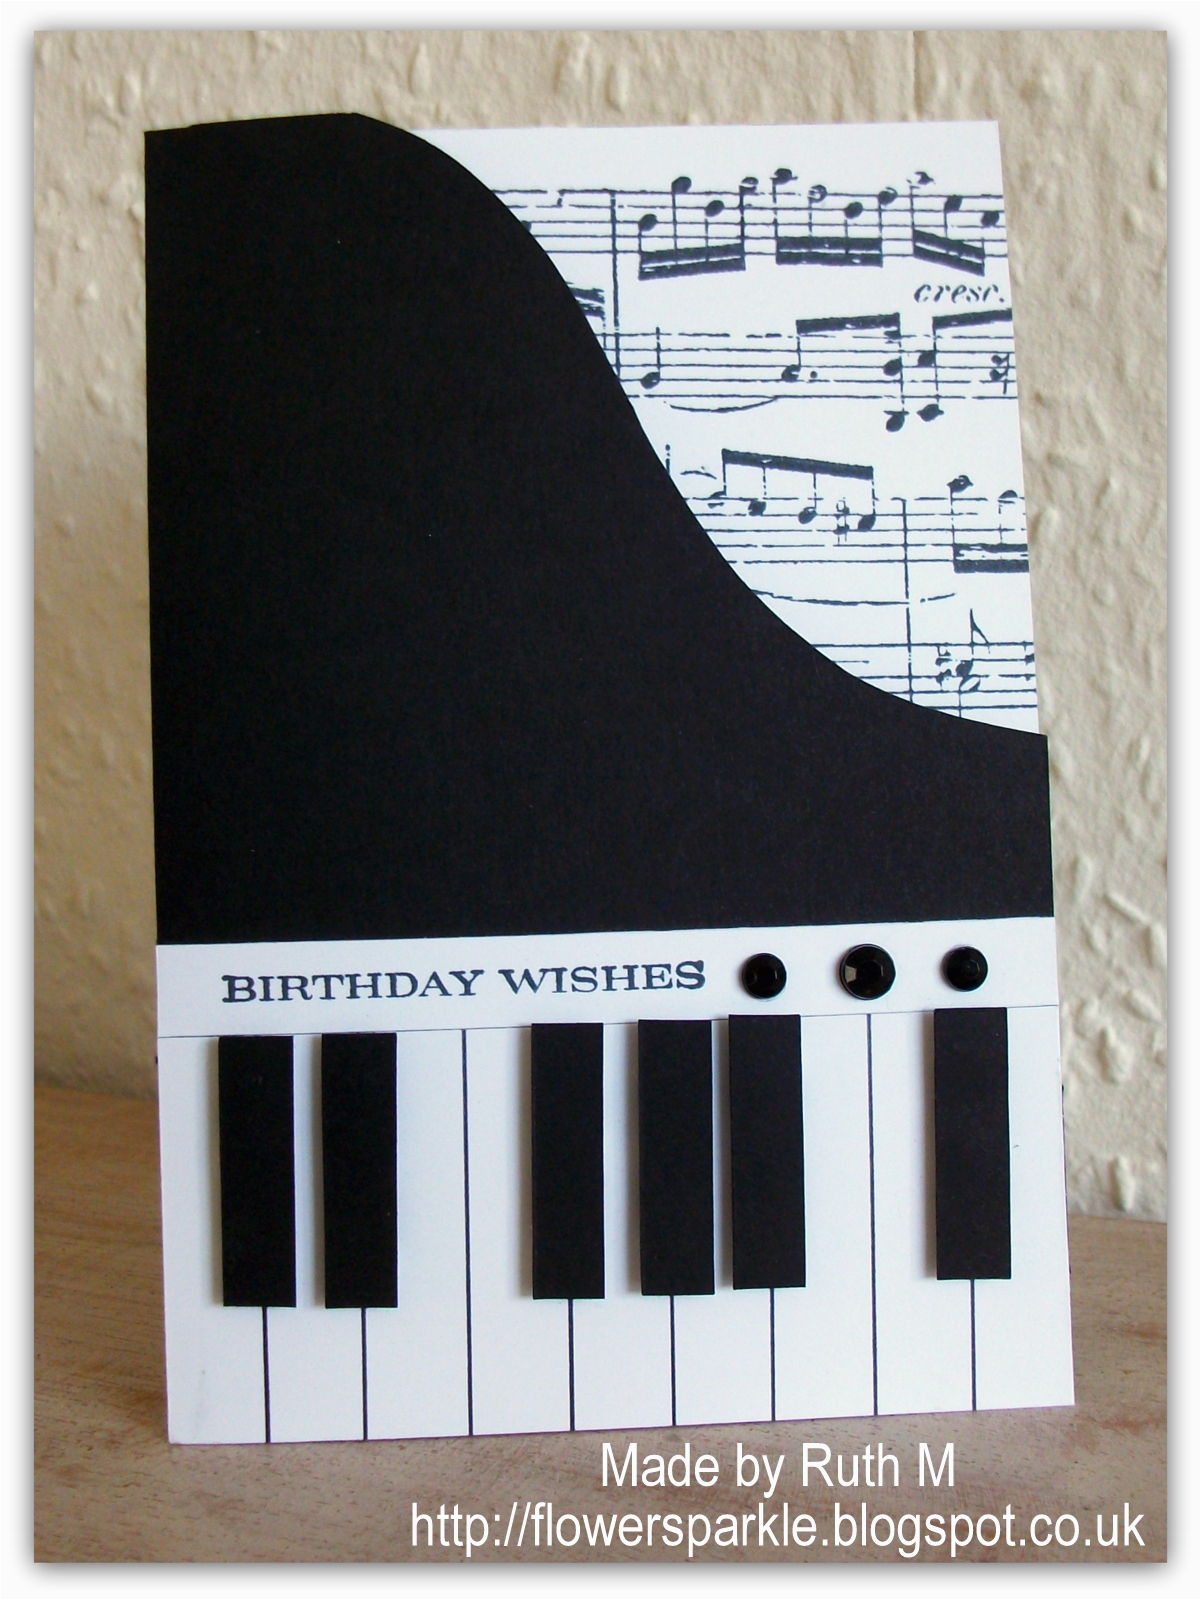 Birthday Cards With A Piano Theme Flower Sparkle Wishes Card For Alan